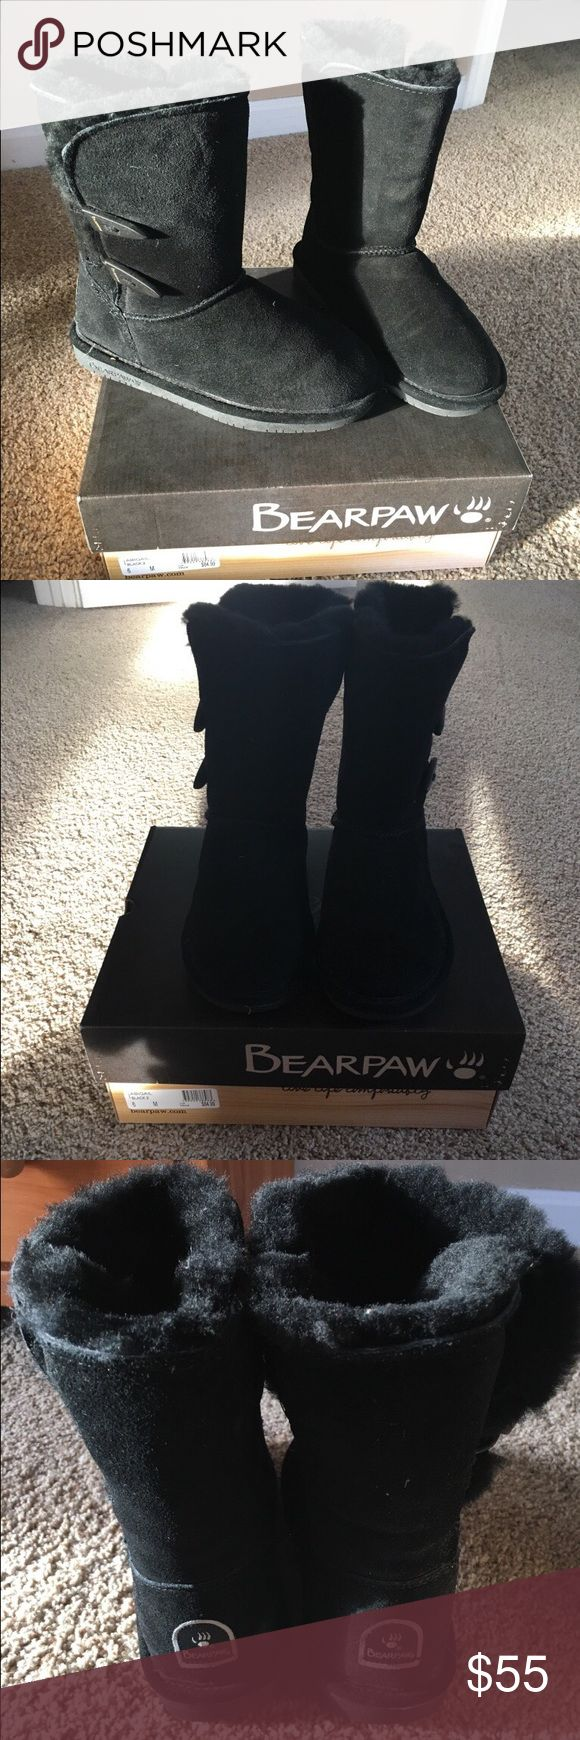 Black Bearpaw boots Black never worn Bearpaw boots. Size 6. Very warm. With box. BearPaw Shoes Winter & Rain Boots